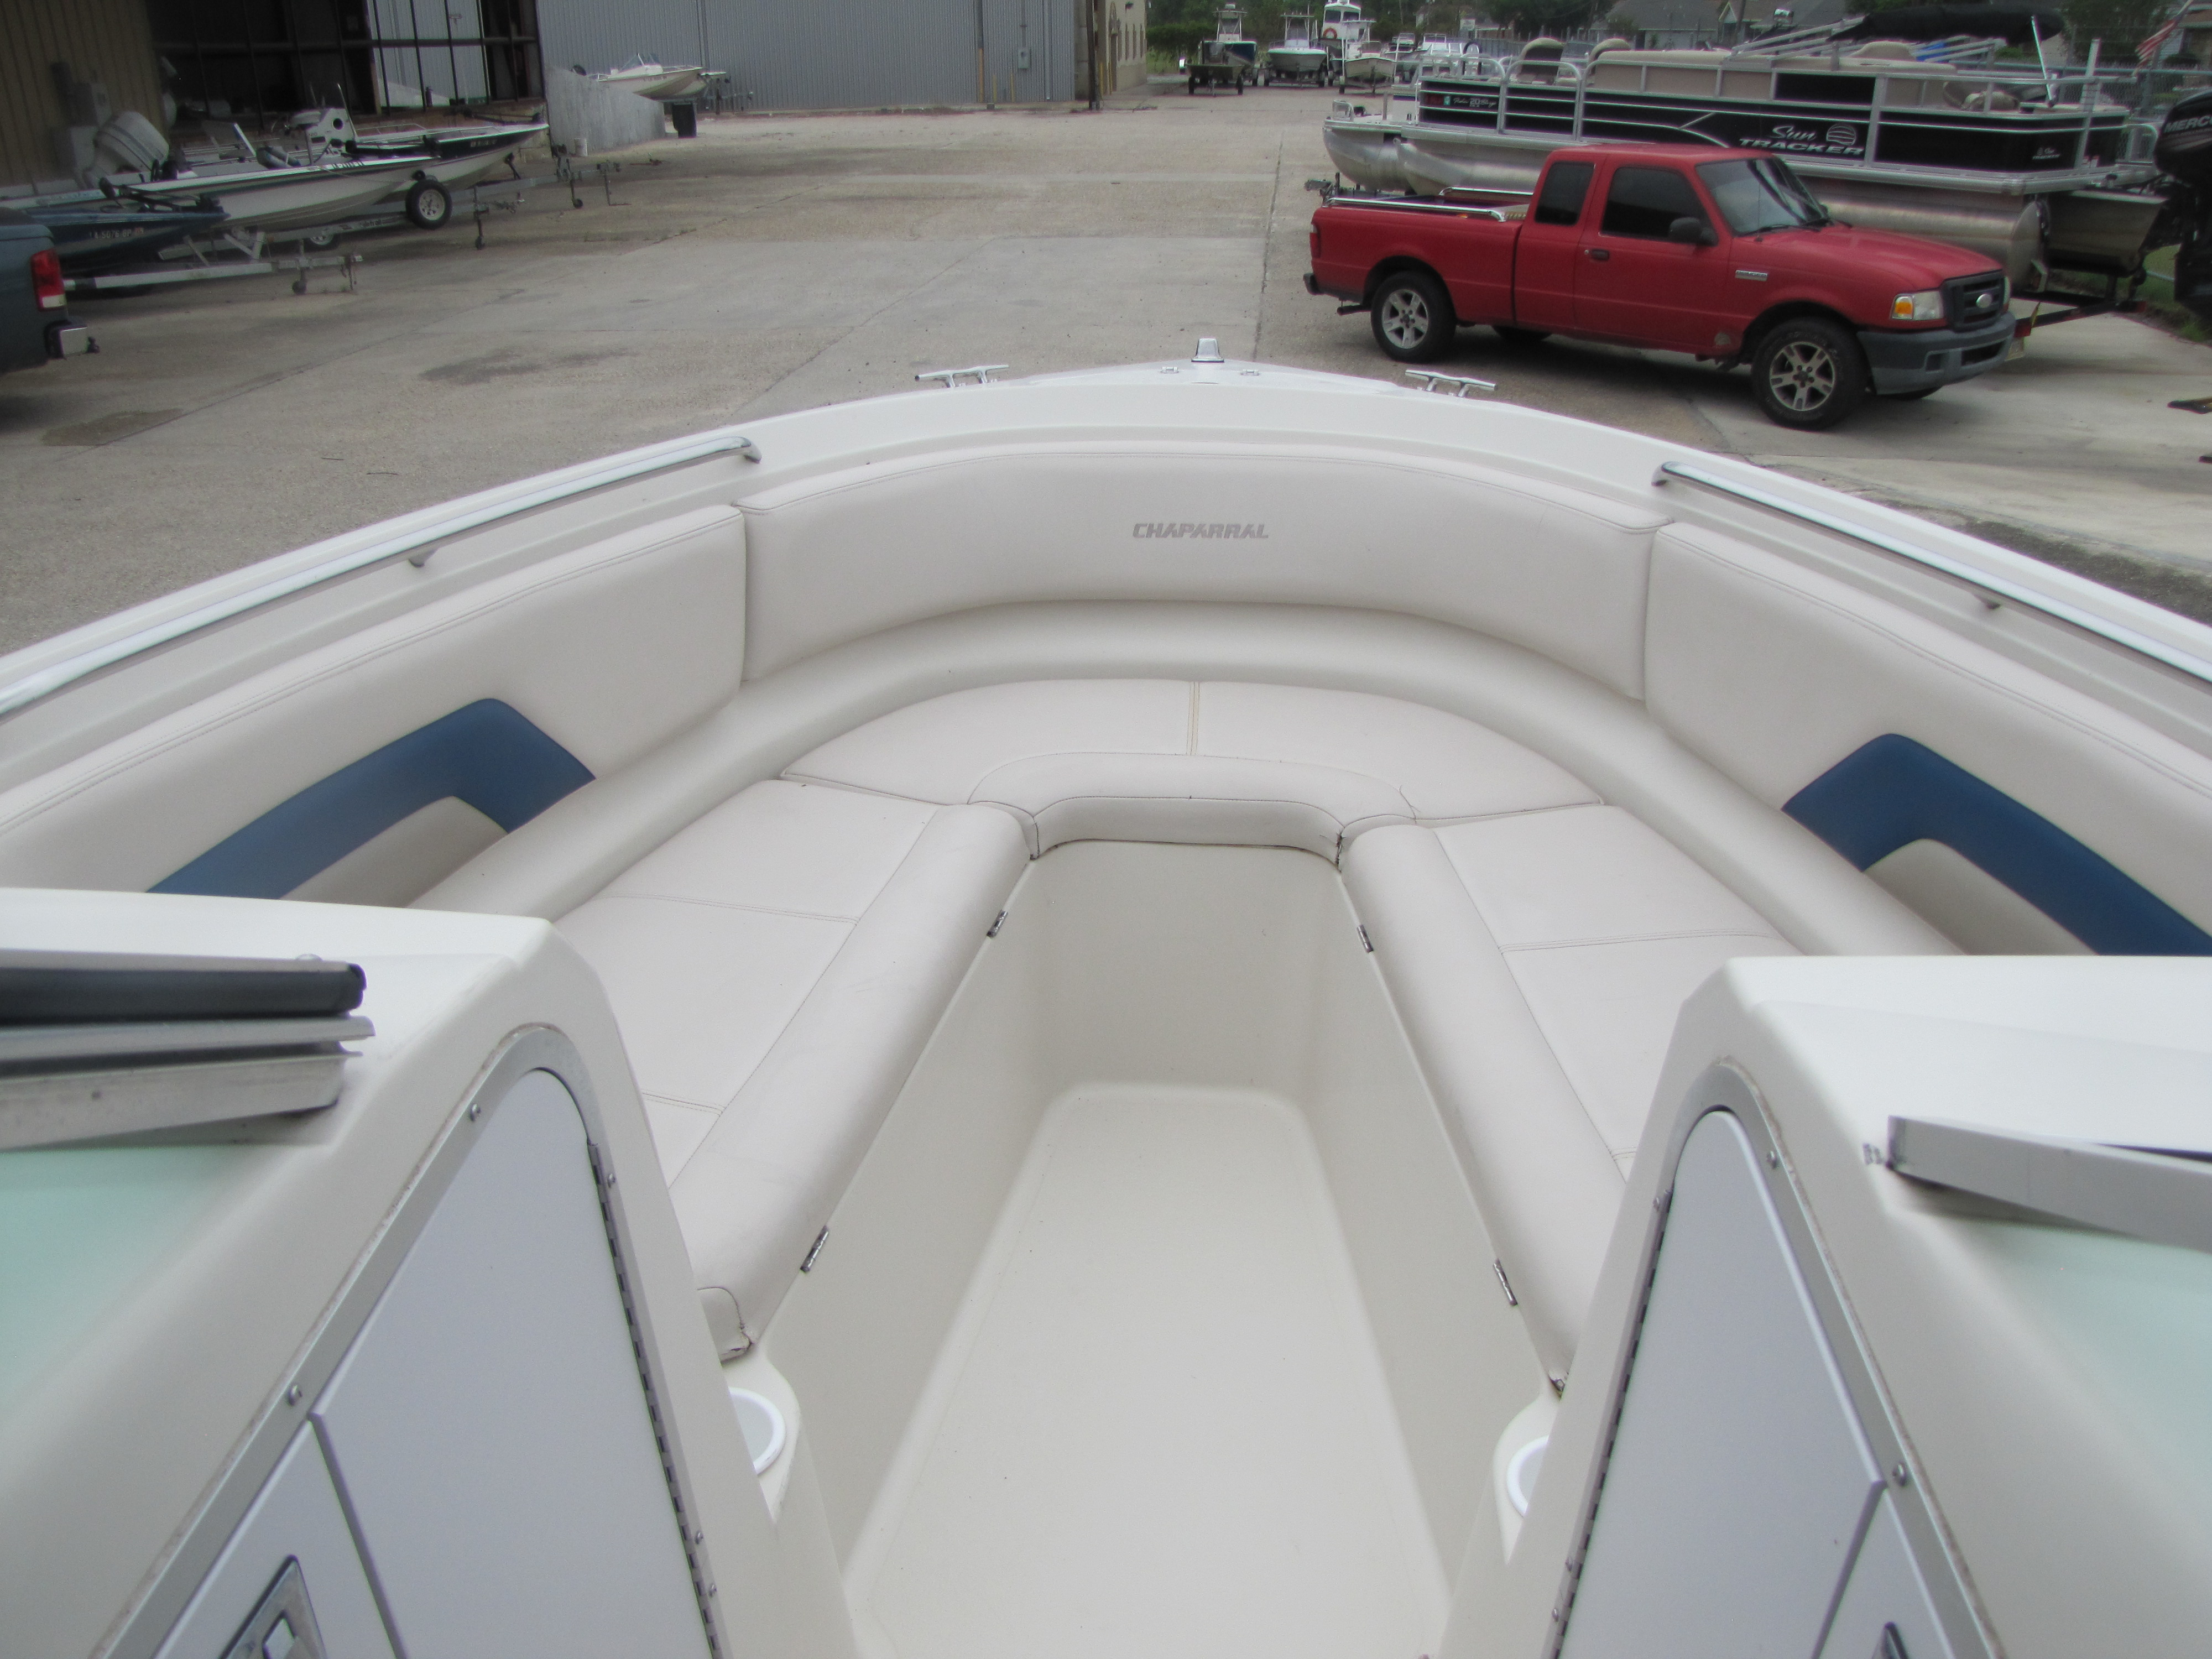 1996 Chaparral boat for sale, model of the boat is 2330 & Image # 13 of 14